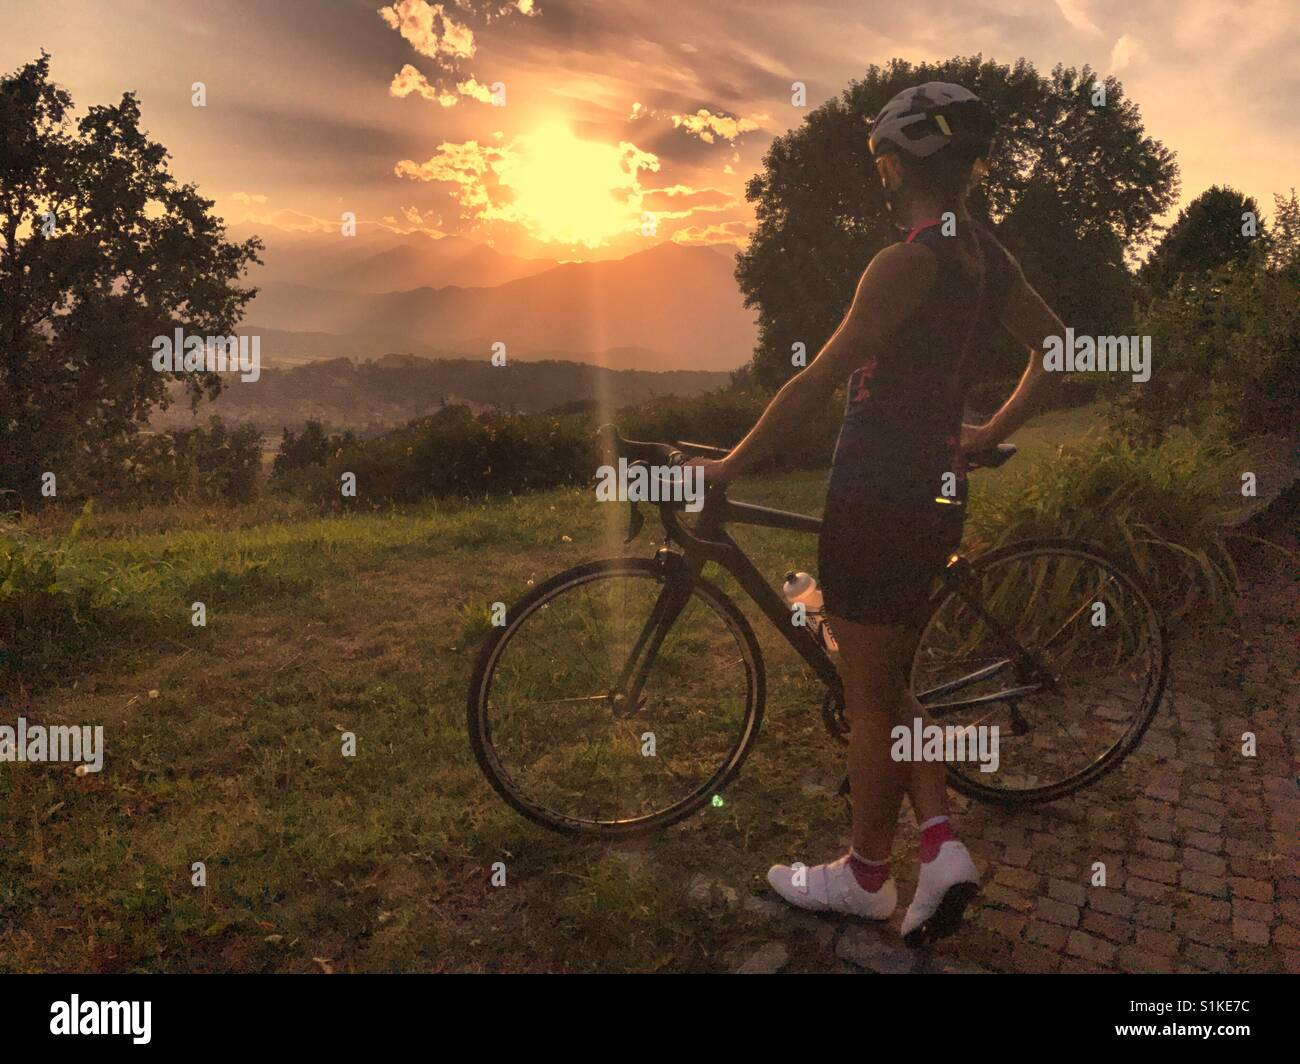 Summer Cycling at Sunset - Stock Image